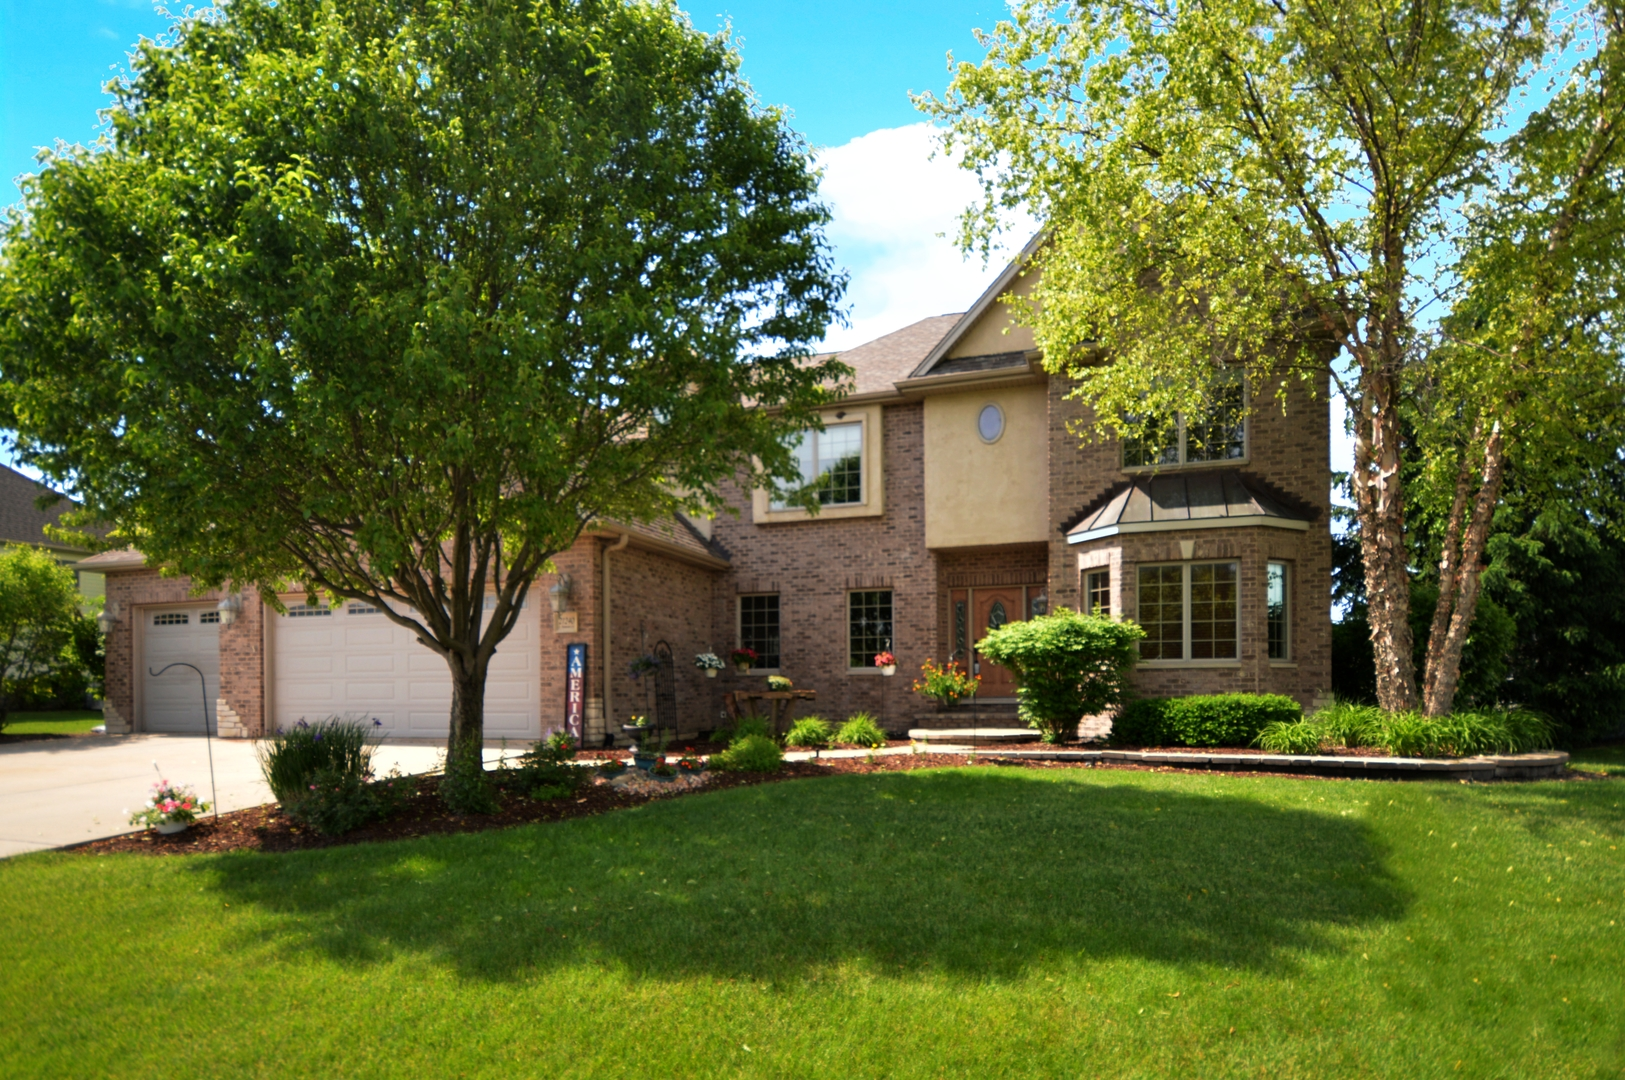 21240 South Redwood Lane, one of homes for sale in Shorewood